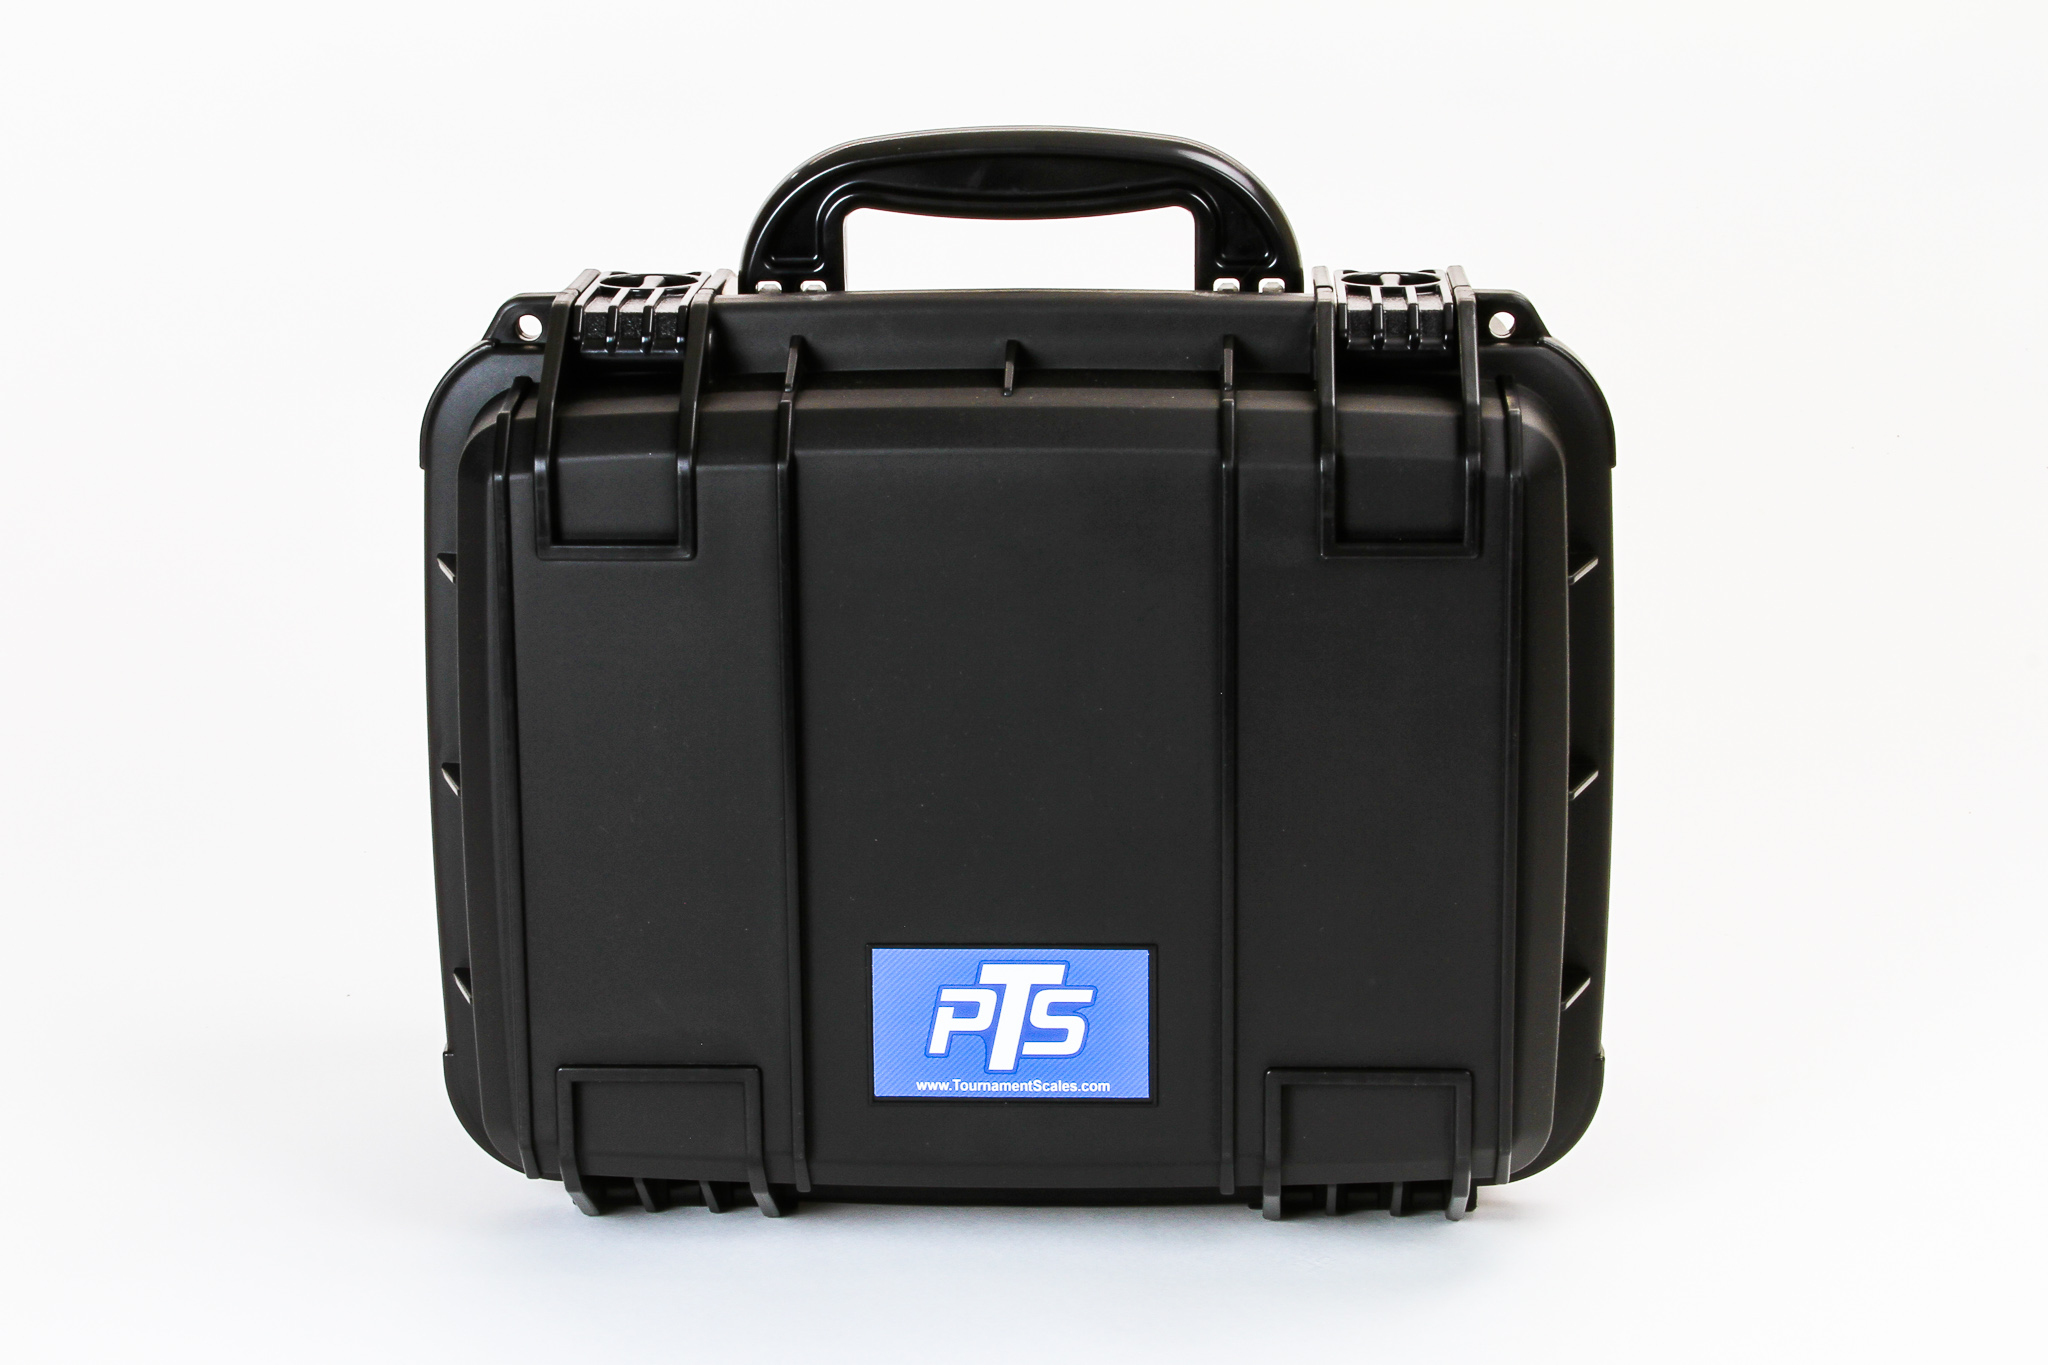 Waterproof Storage Case for Printer